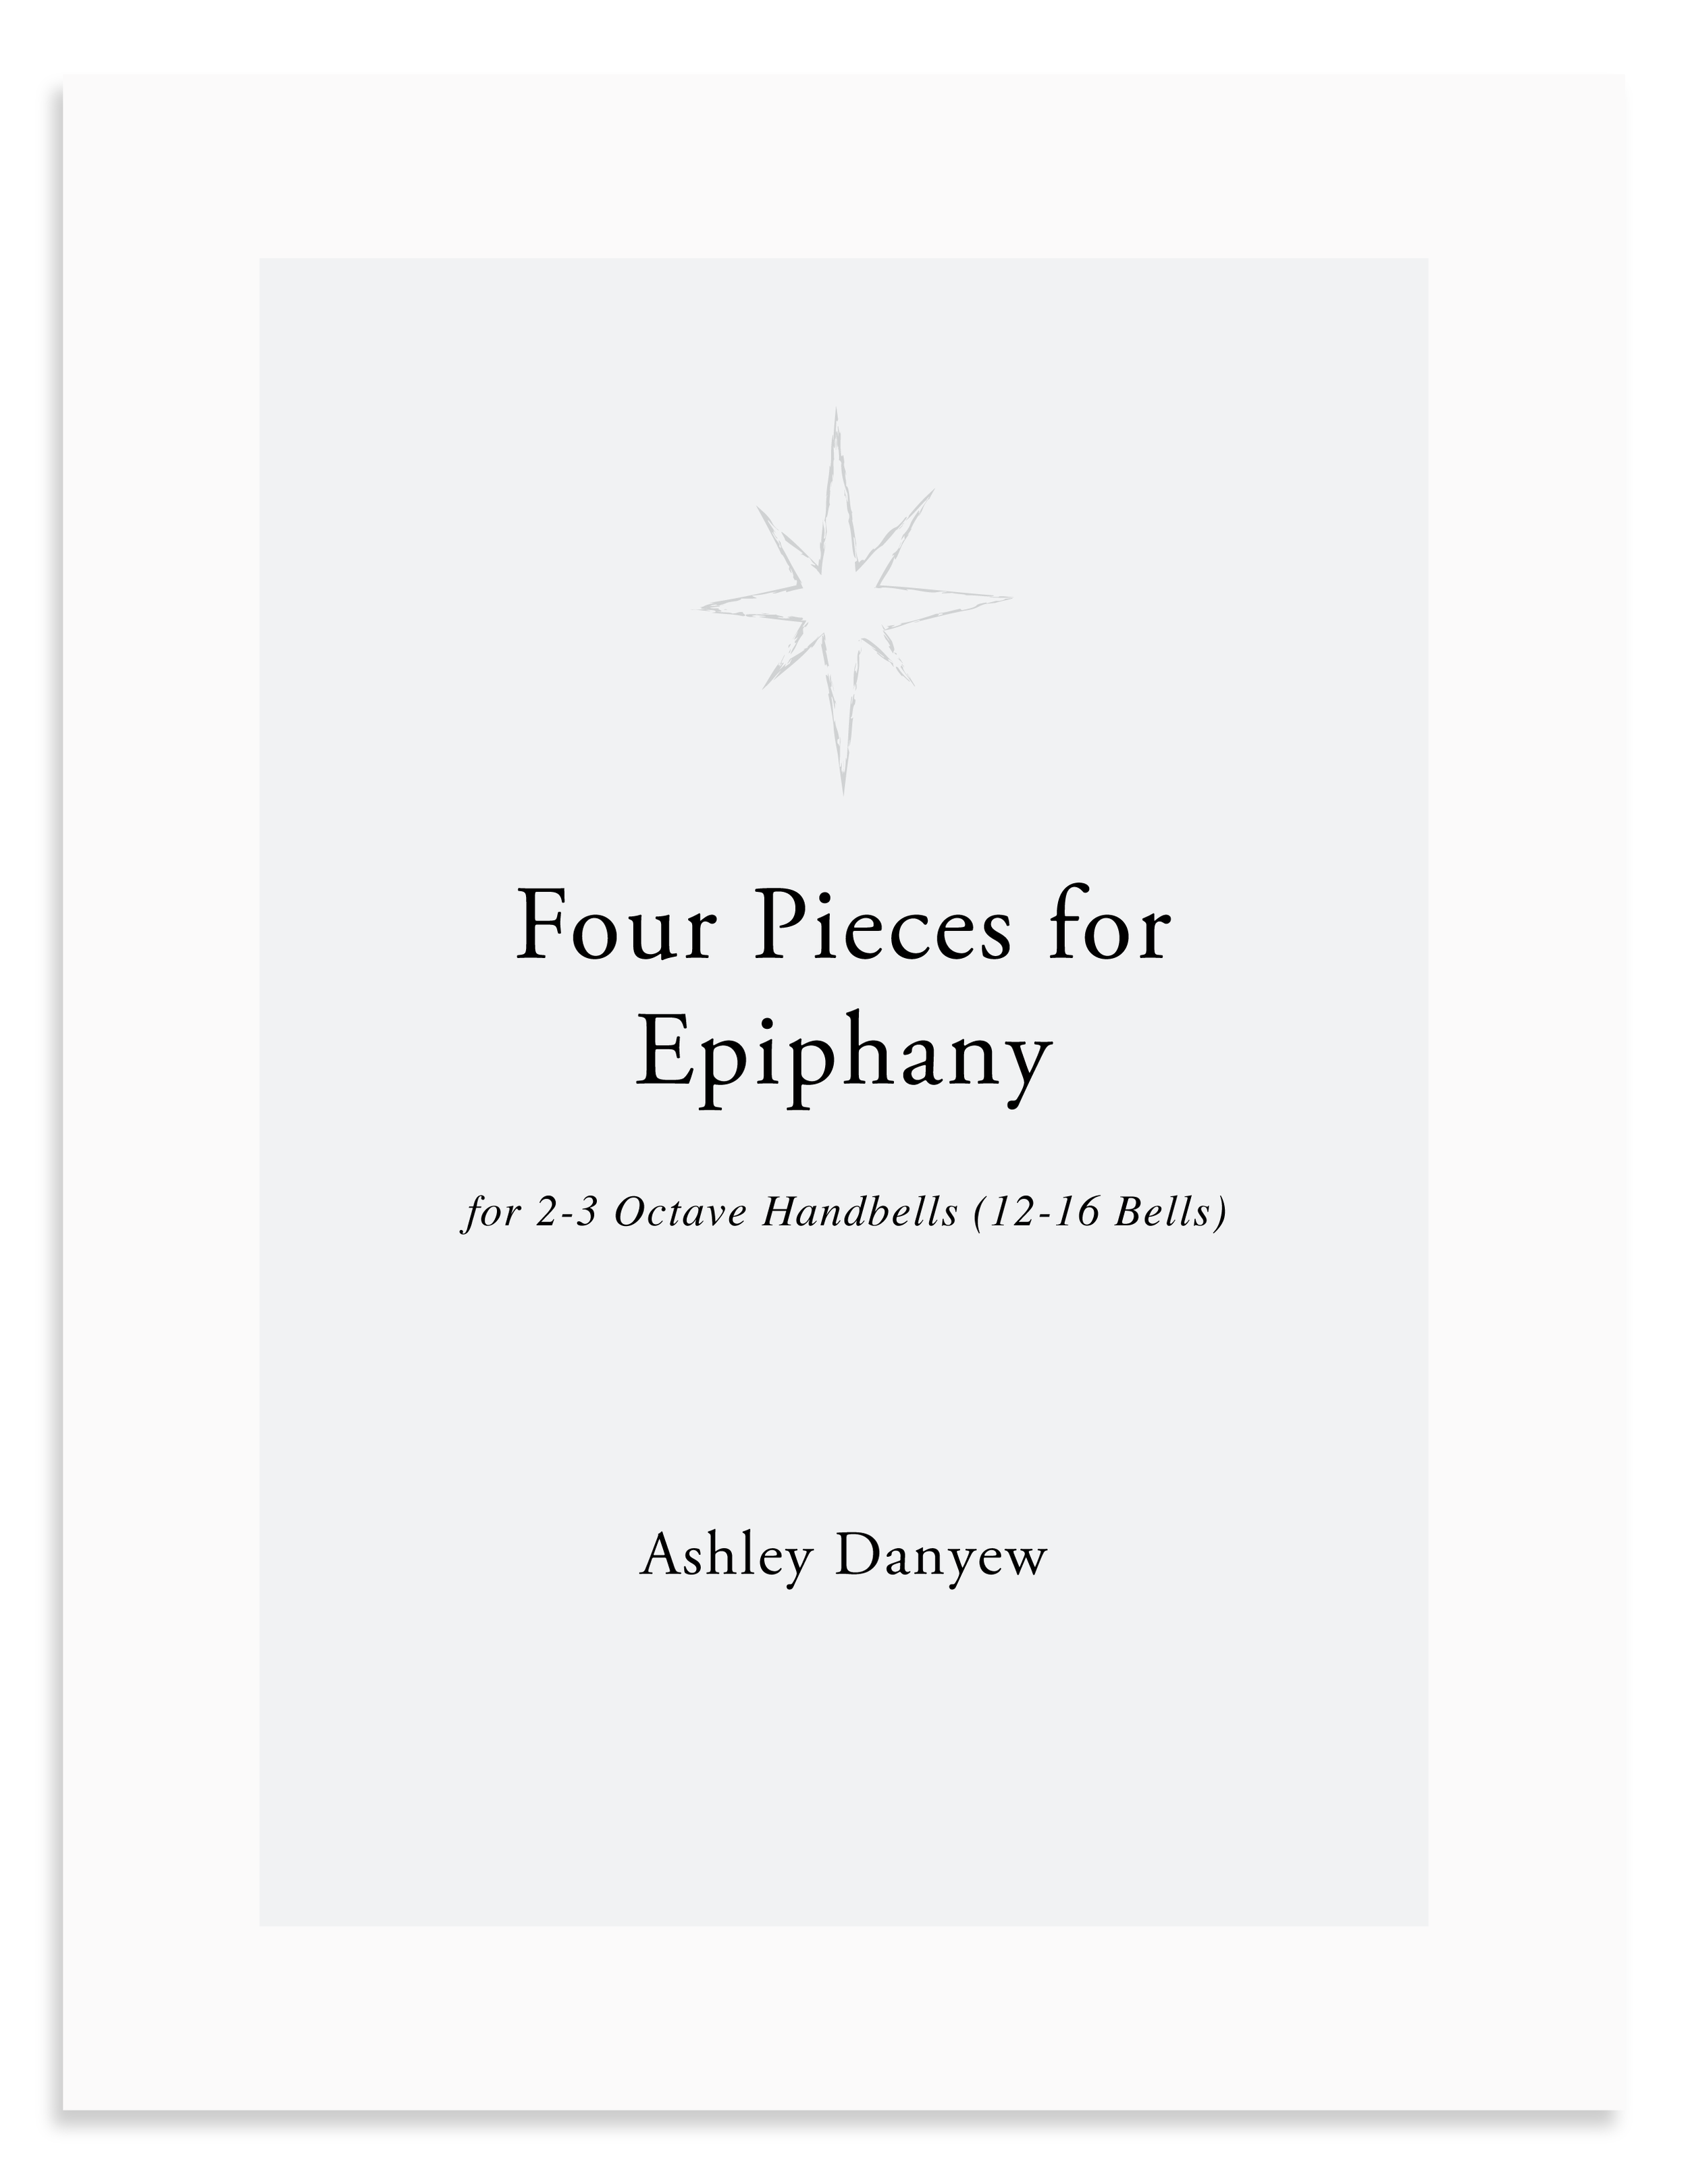 Four Pieces for Epiphany: A New Handbell Collection